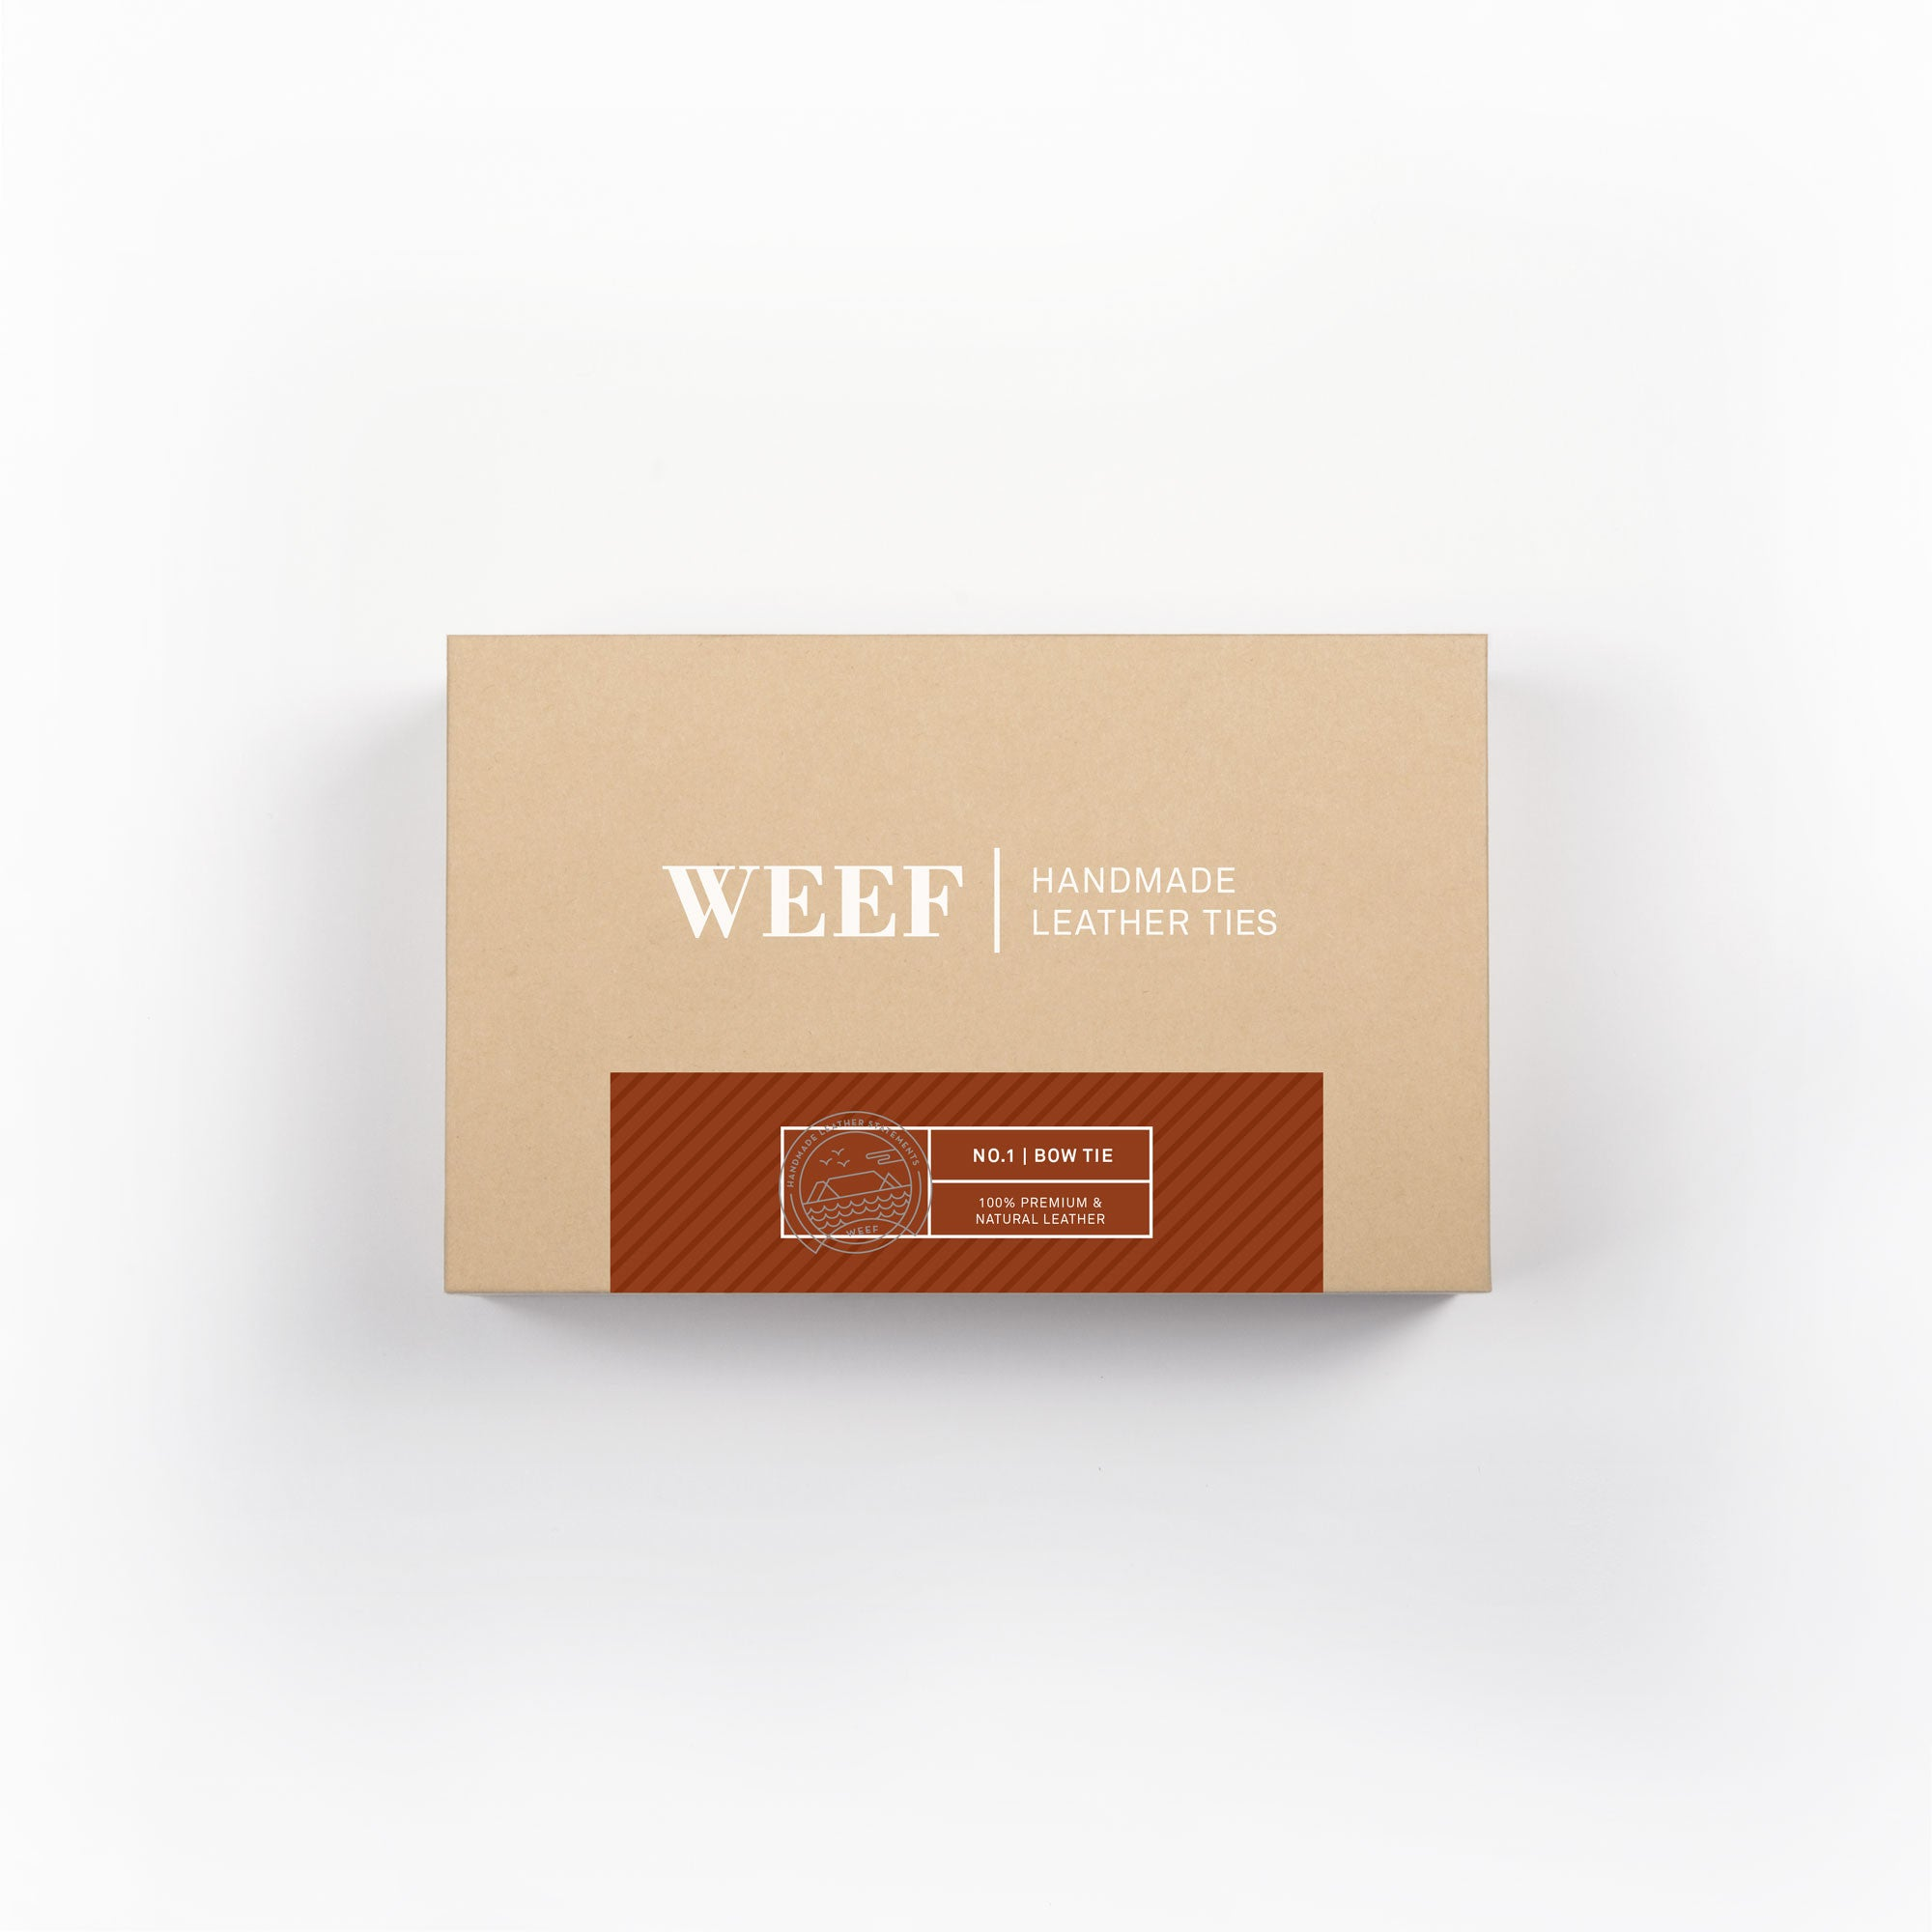 This is the premium packaging box of the cognac tan WEEF handmade leather bow tie.